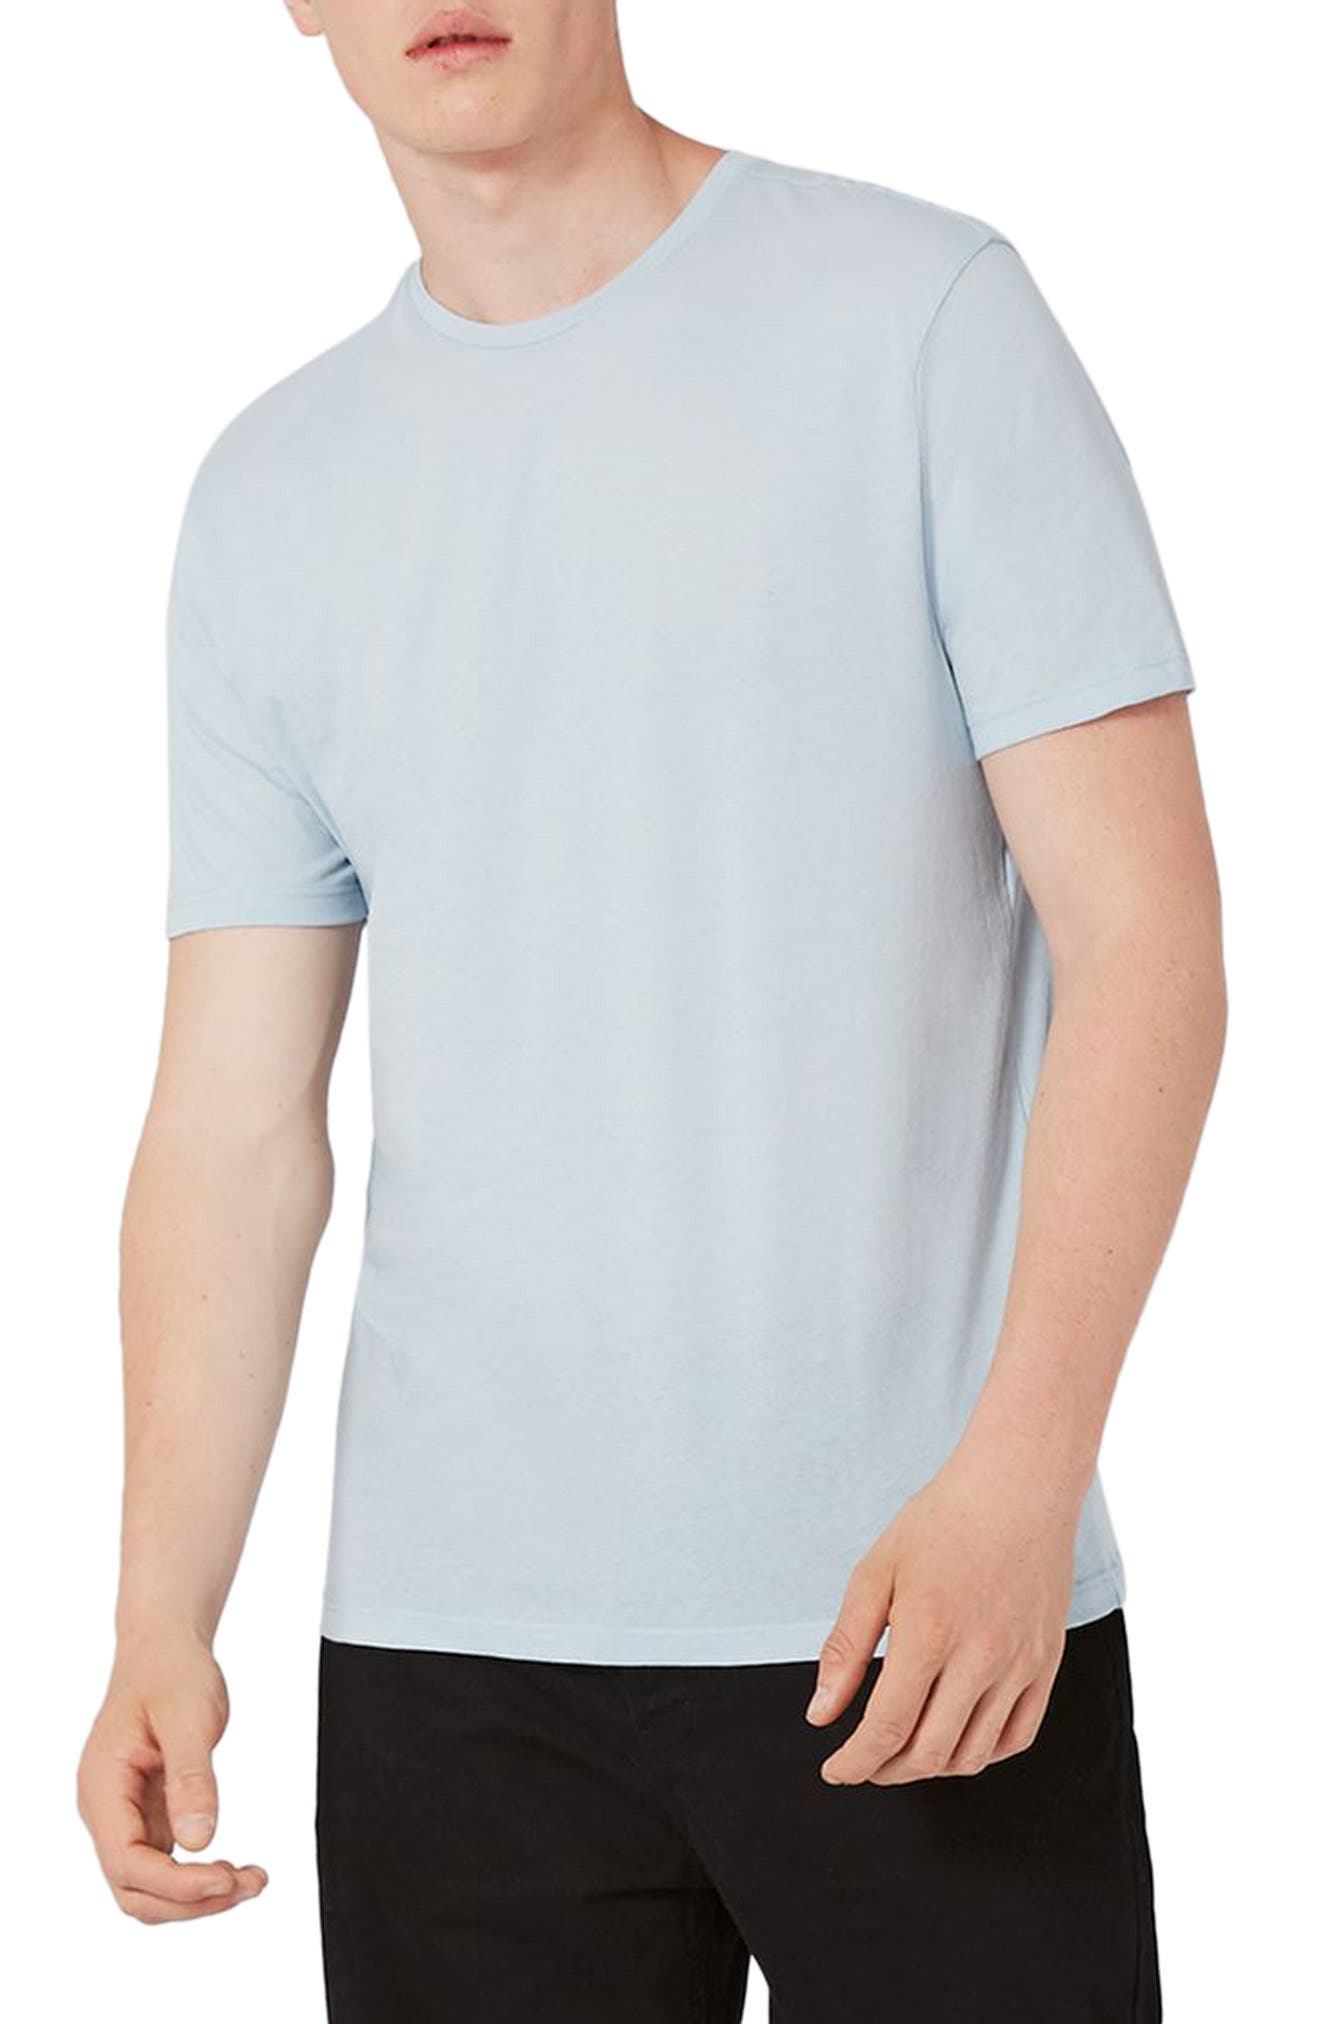 Topman Lightweight Cotton T-Shirt